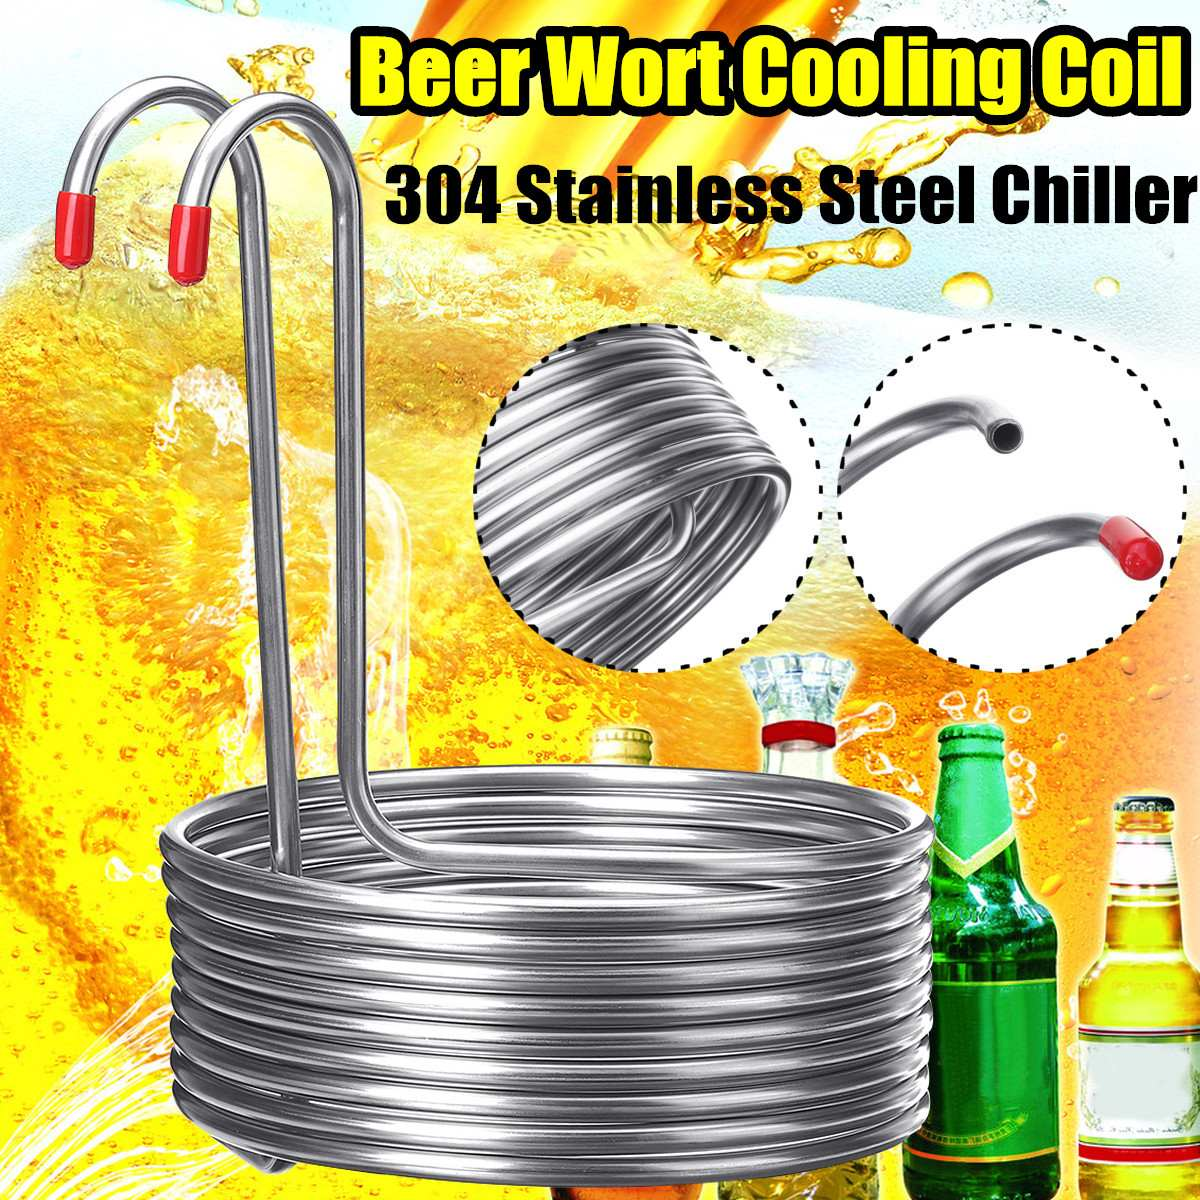 304 Stainless Steel Immersion Wort Chiller Tube For Home Brewing Super Efficient Wort Chiller Home Wine Making Machine Part